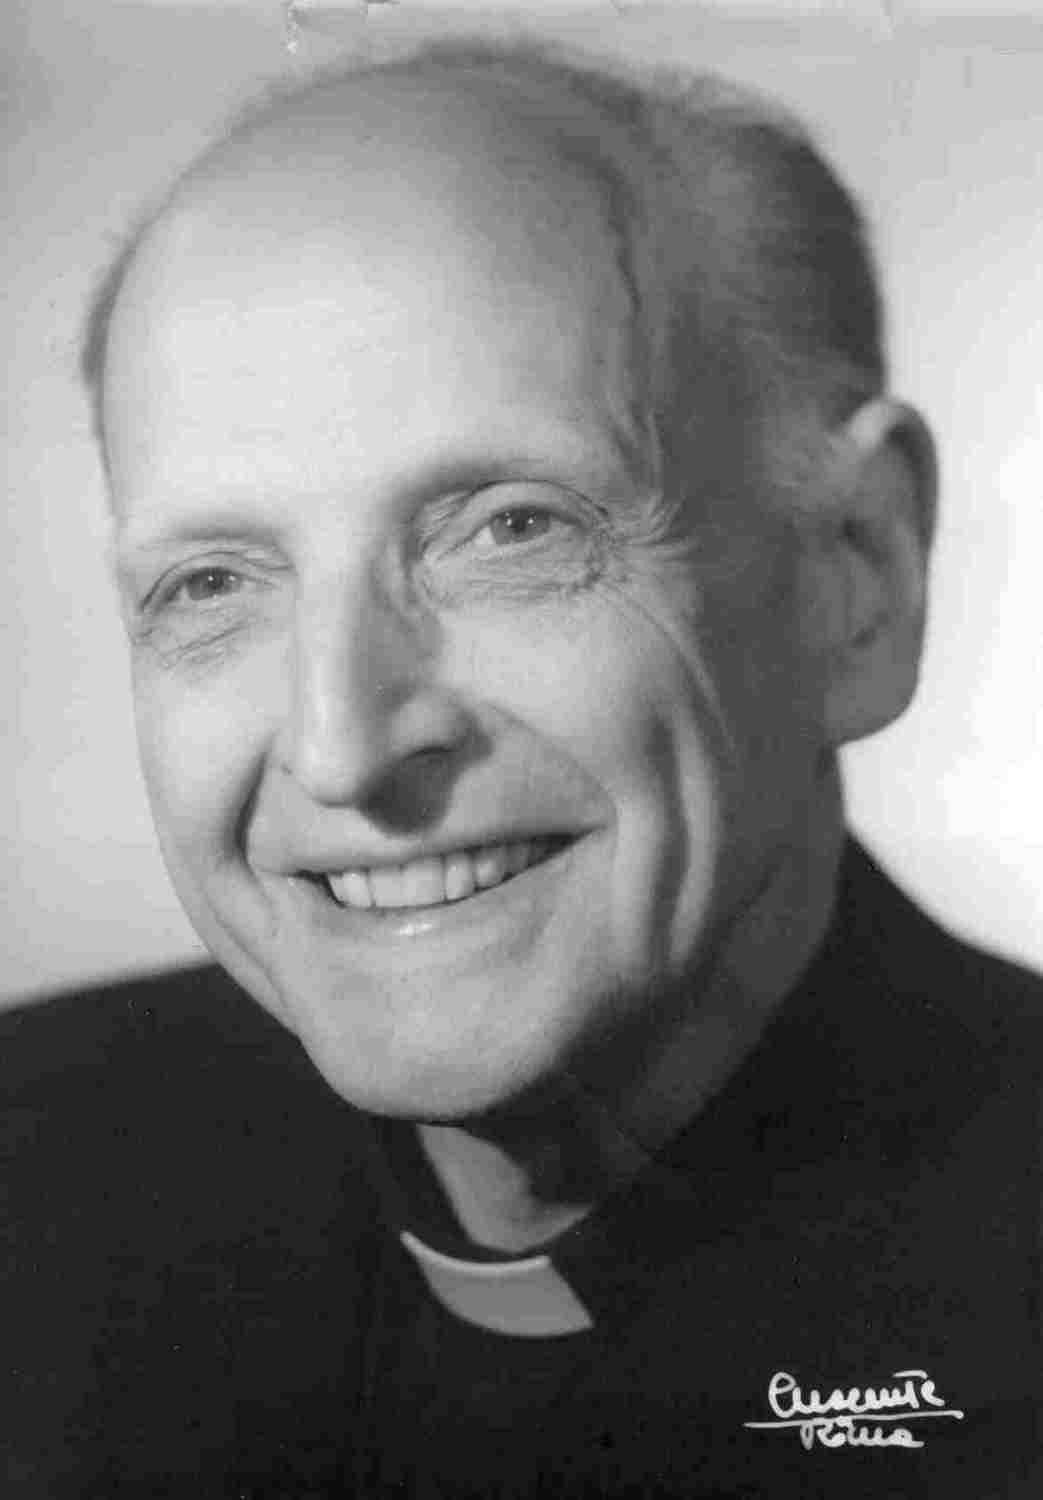 father arrupes three attitudes in the Definition of attitude according to rjeffress we can say that attitude is a mental and emotional response to the variety of circumstances that occur in life they are not specifically behaviors but modes or forms of conduct or performance.